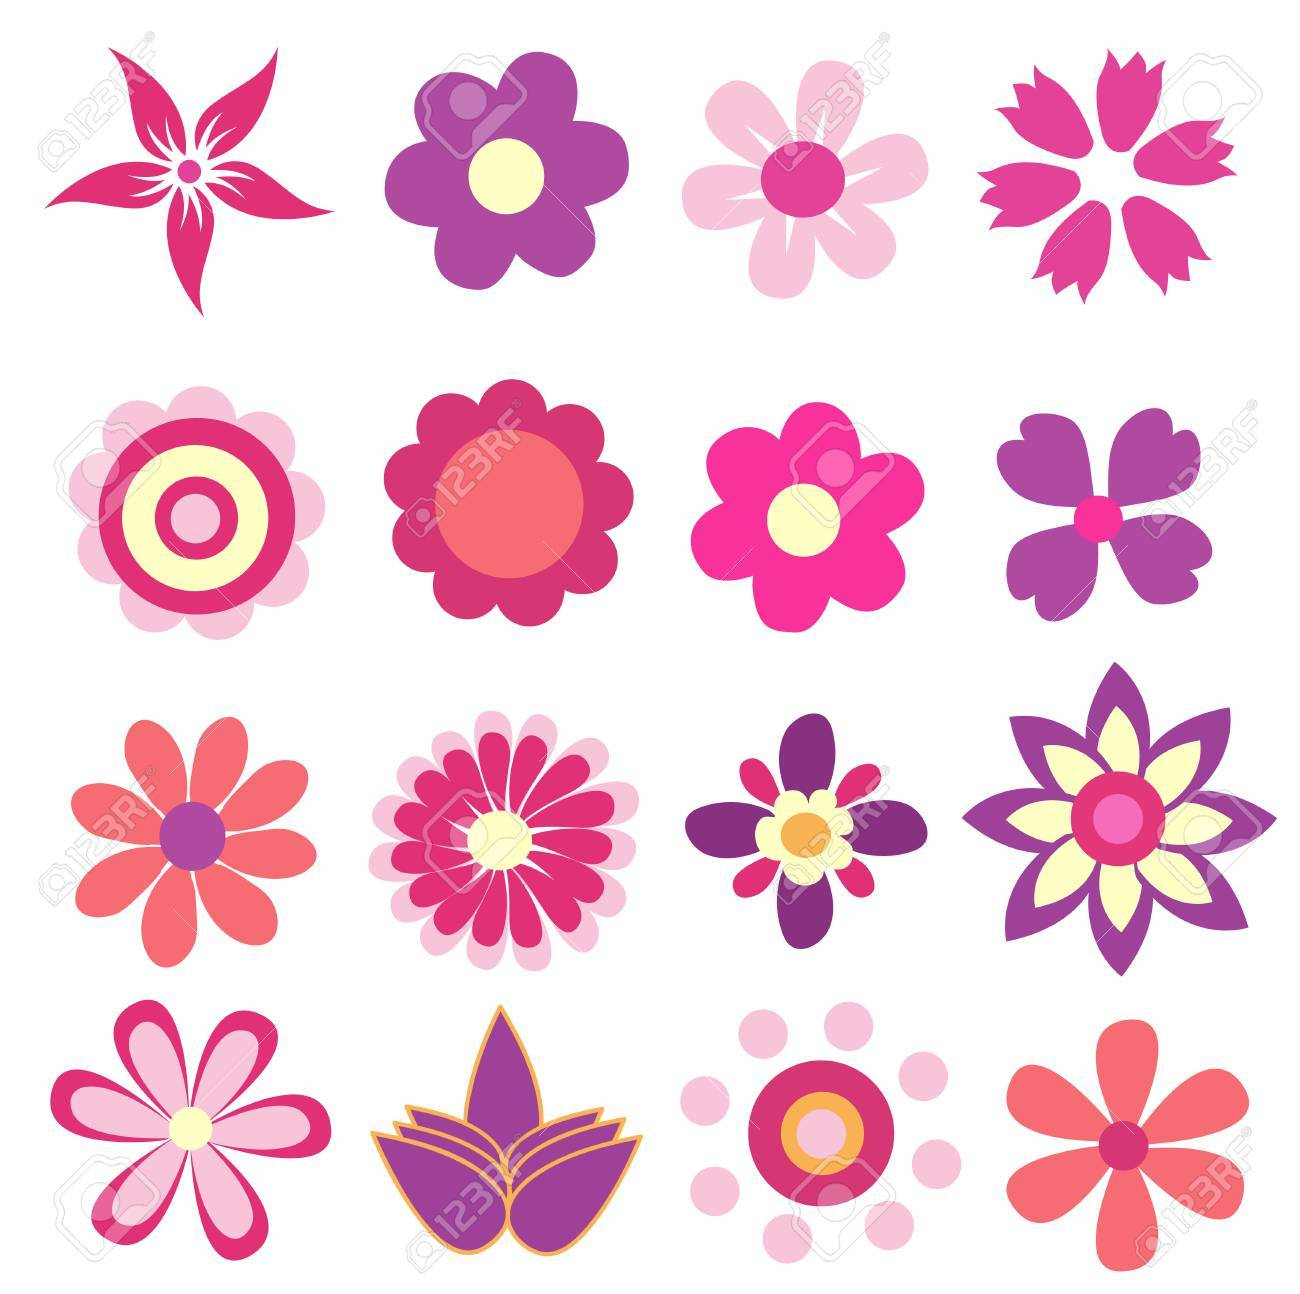 colorful spring flowers vector illustration - 27919865